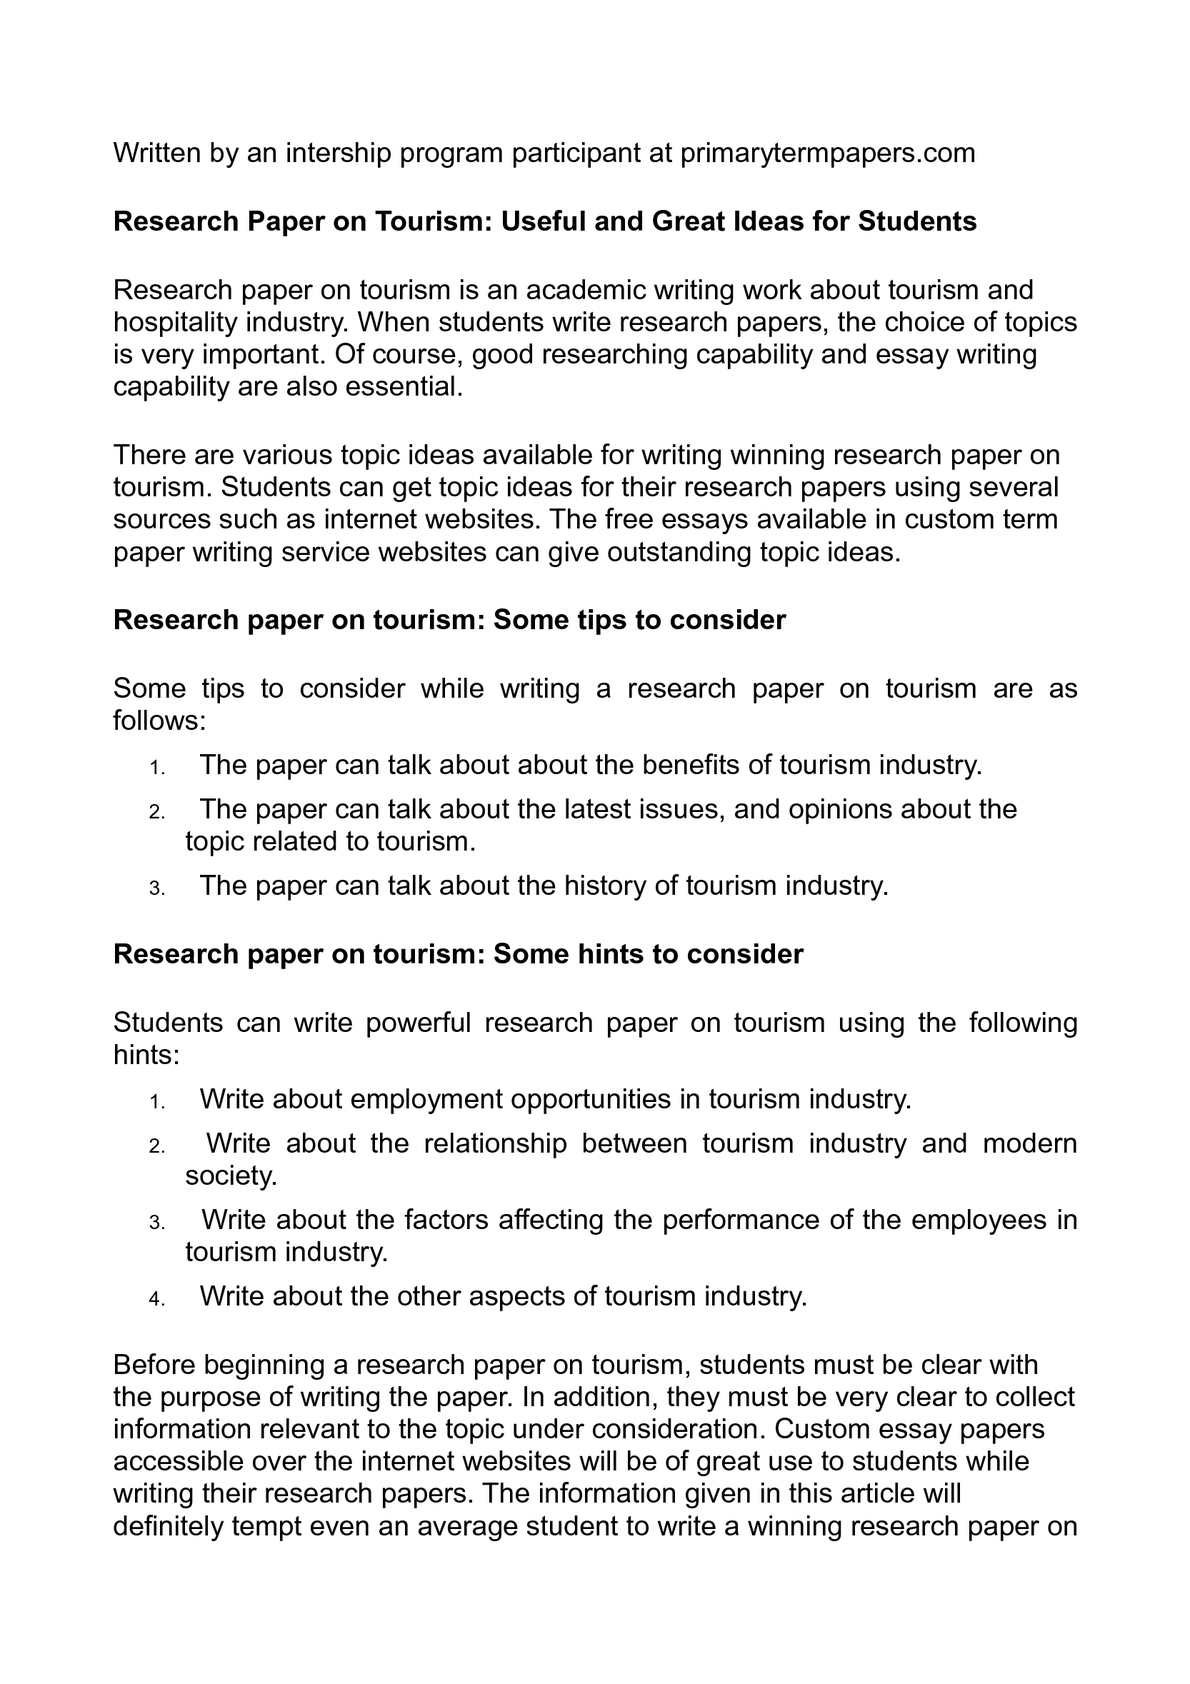 006 Research Paper P1 Topics To Writebout In Shocking Write About A Health On Full